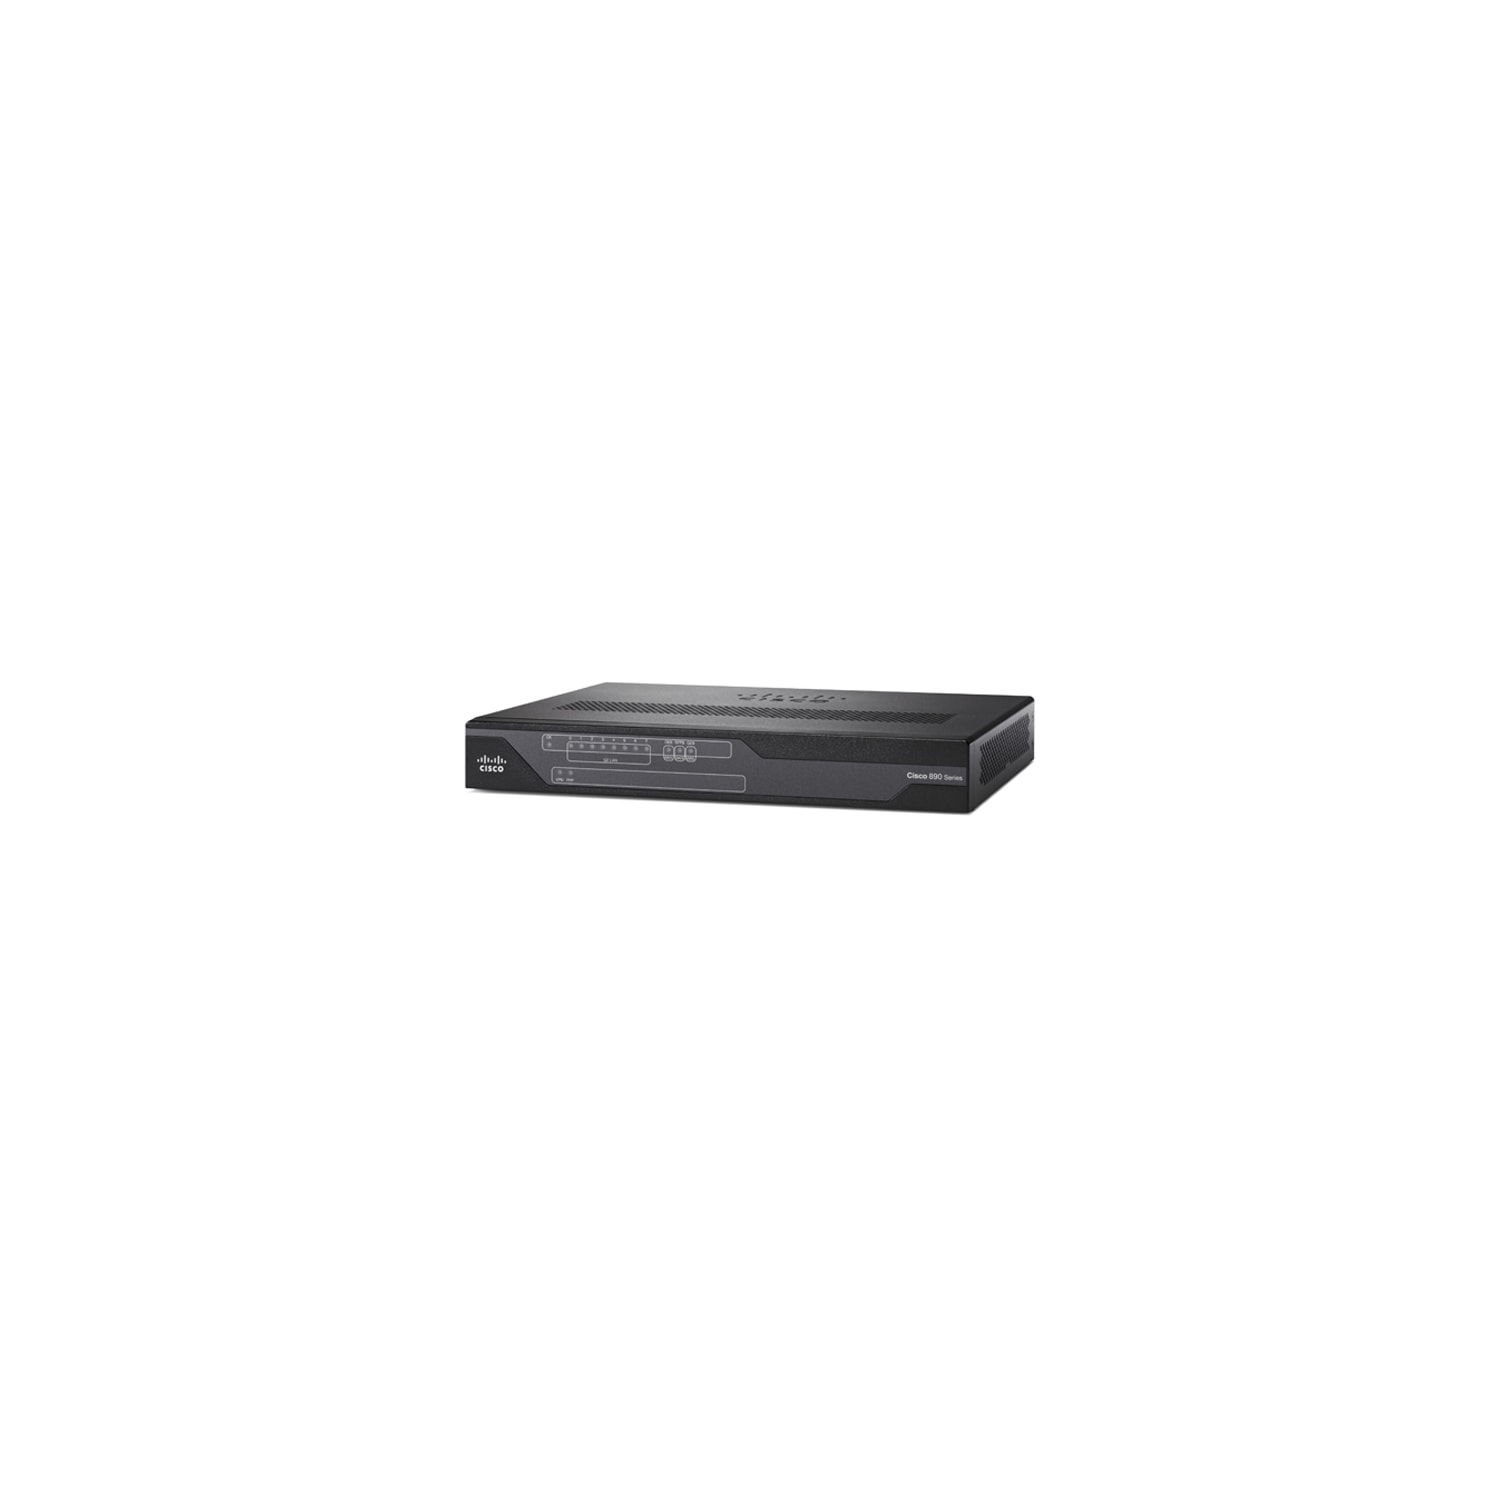 Buy Cisco C898EAG-LTE Ethernet, Cellular Modem/Wireless